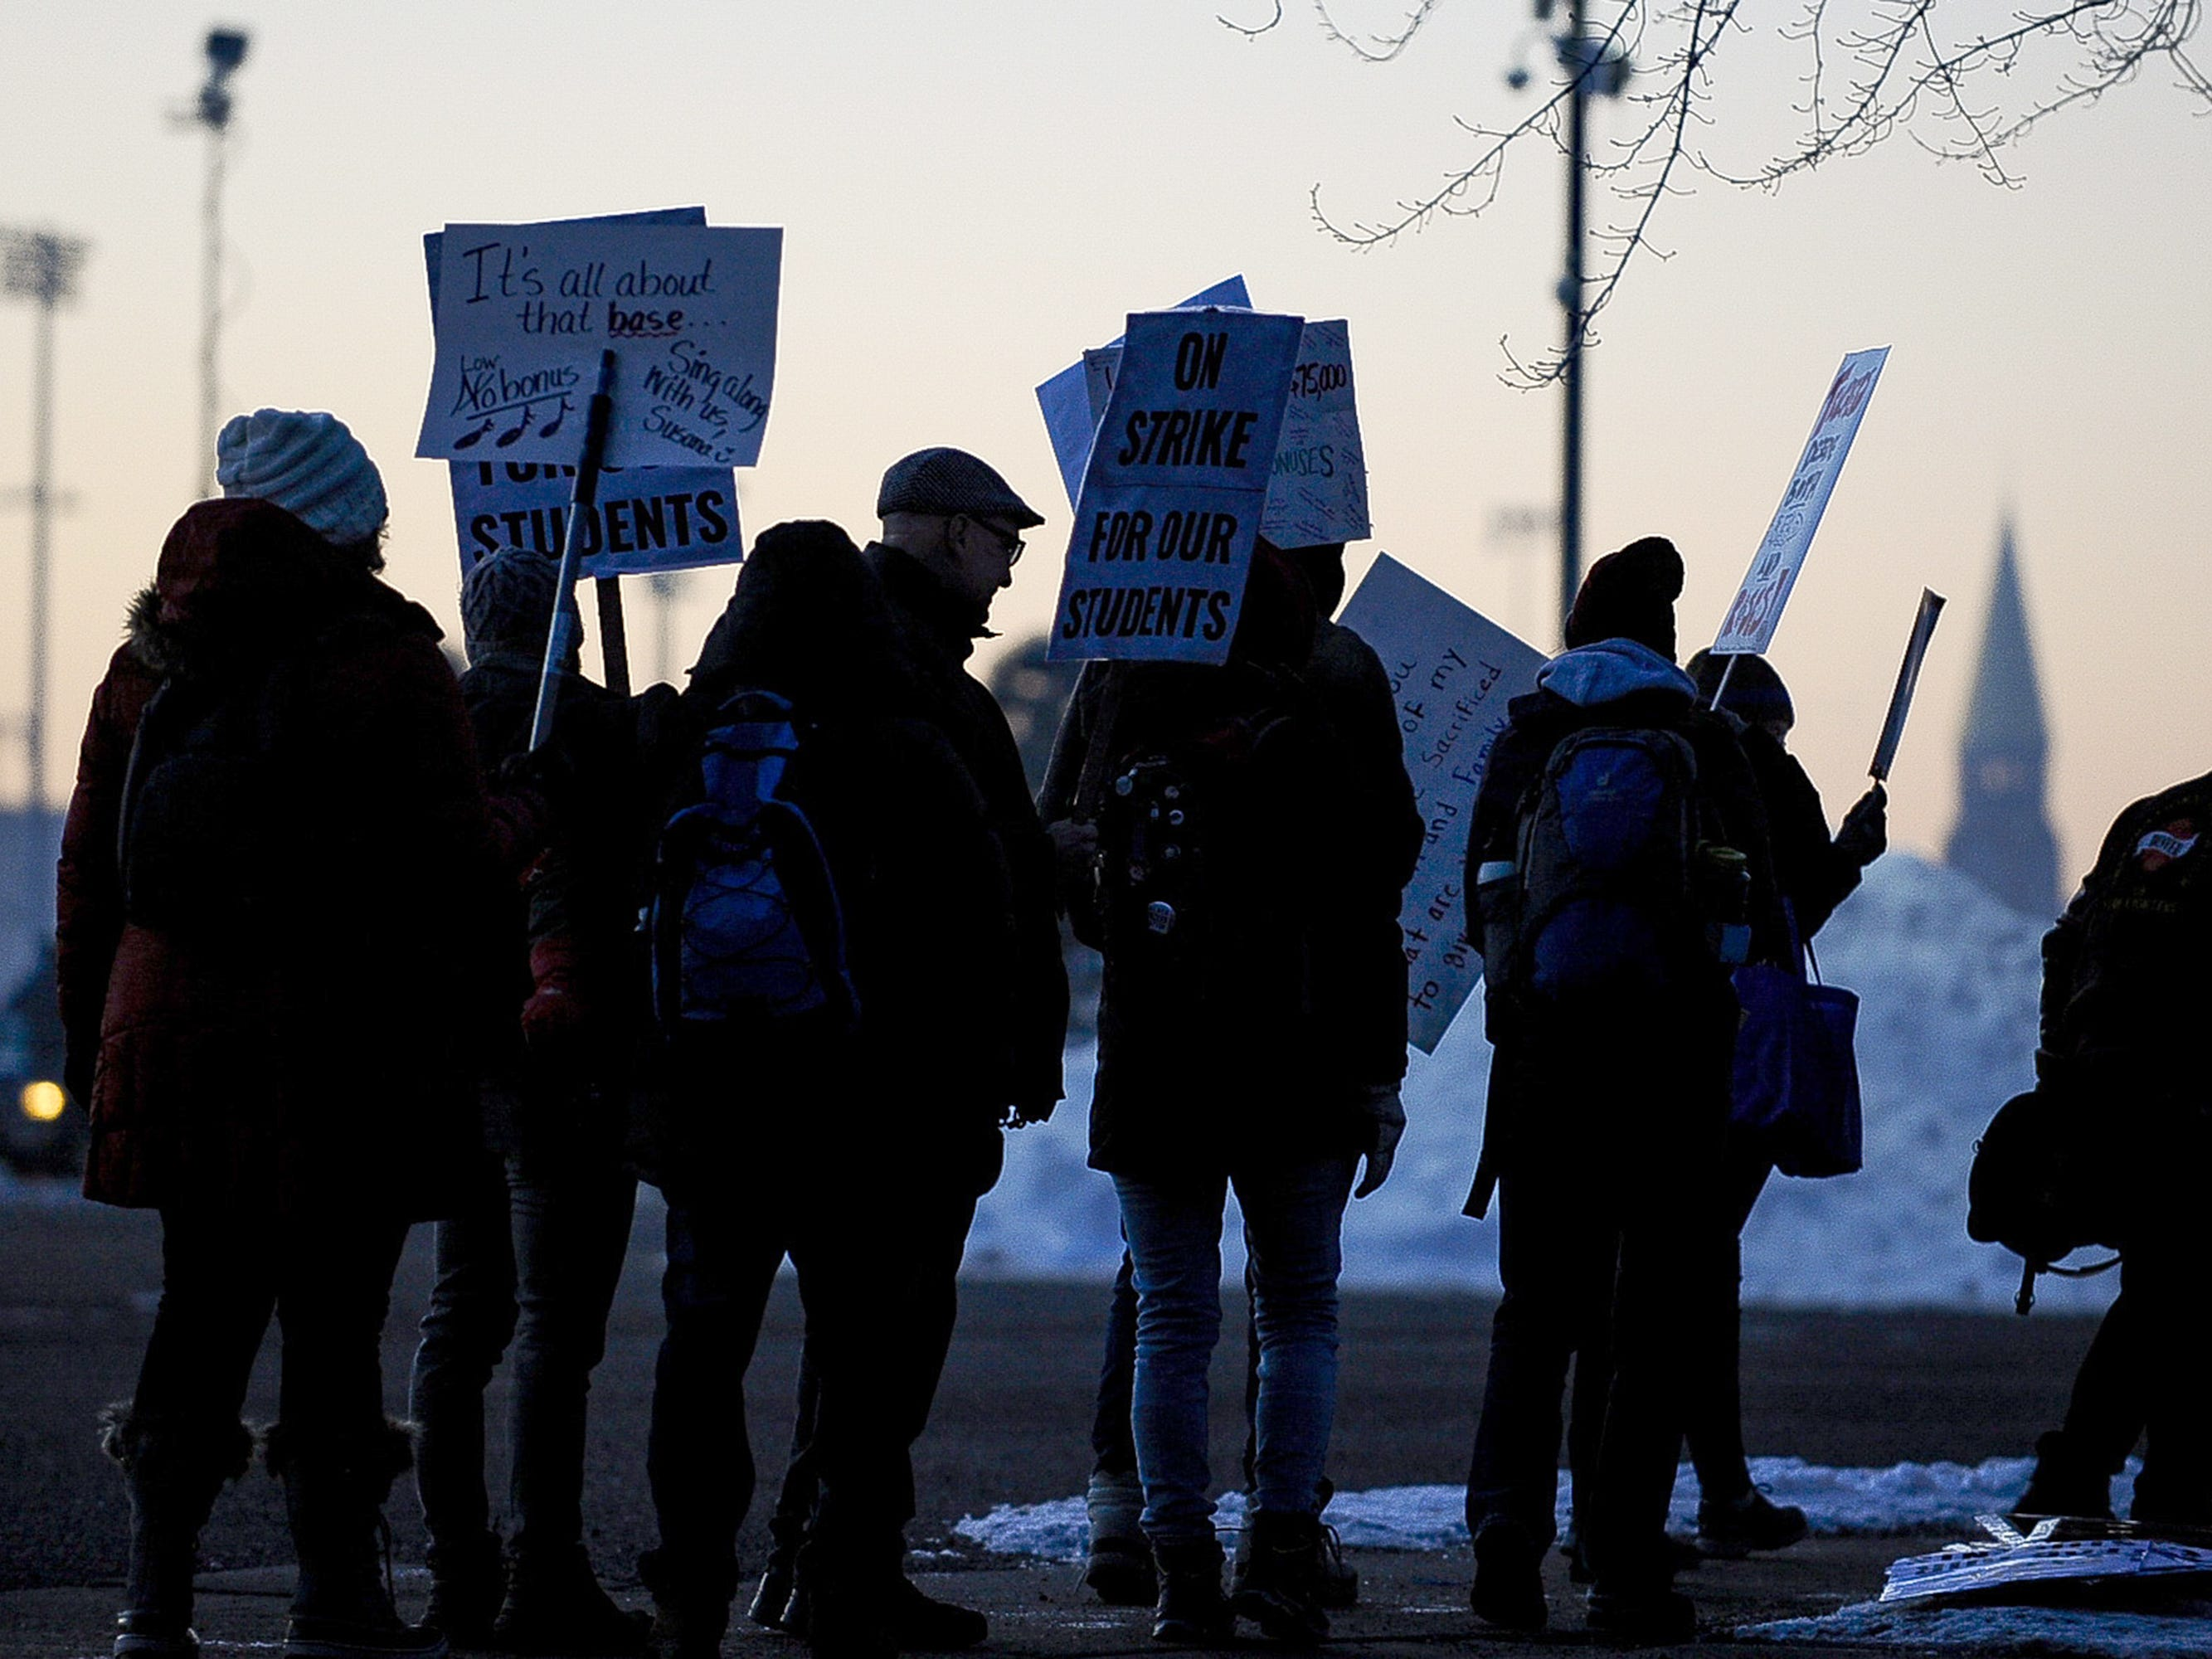 DENVER, CO - FEBRUARY 11: Denver Public Schools teachers and members of the community picket at sunrise outside South High School on February 11, 2019 in Denver, Colorado. Denver teachers are striking for the first time in 25 years after the school district and the union representing the educators failed to reach an agreement after 14 months of contract negations over teacher pay. (Photo by Michael Ciaglo/Getty Images) ORG XMIT: 775295992 ORIG FILE ID: 1097895692